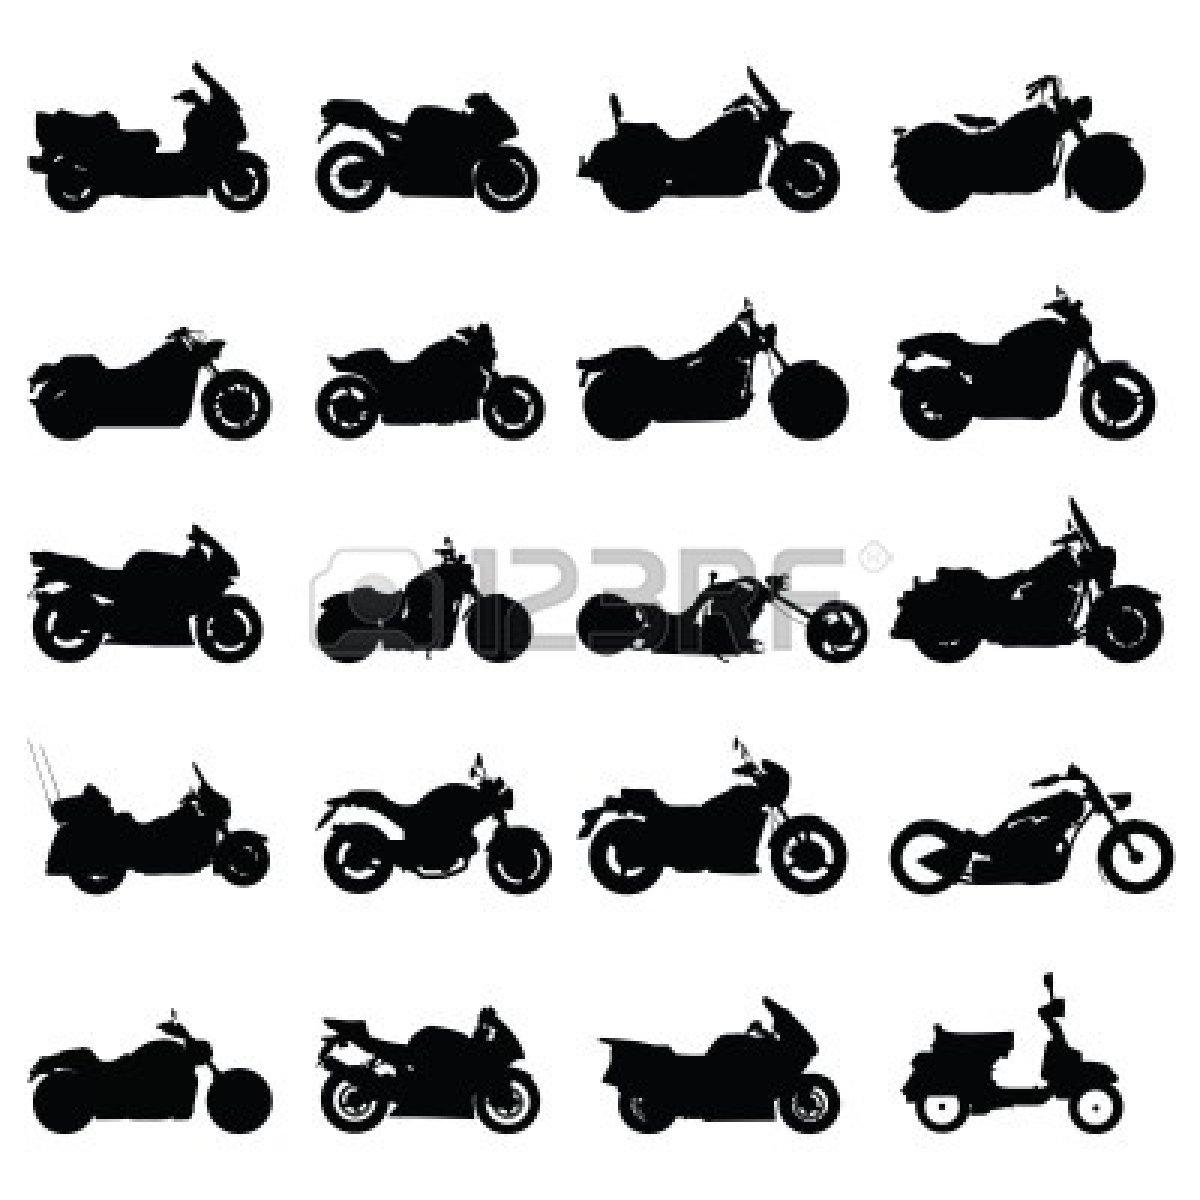 free vector clipart silhouette harley motorcycle - Clipground for Harley Motorcycle Clipart  76uhy